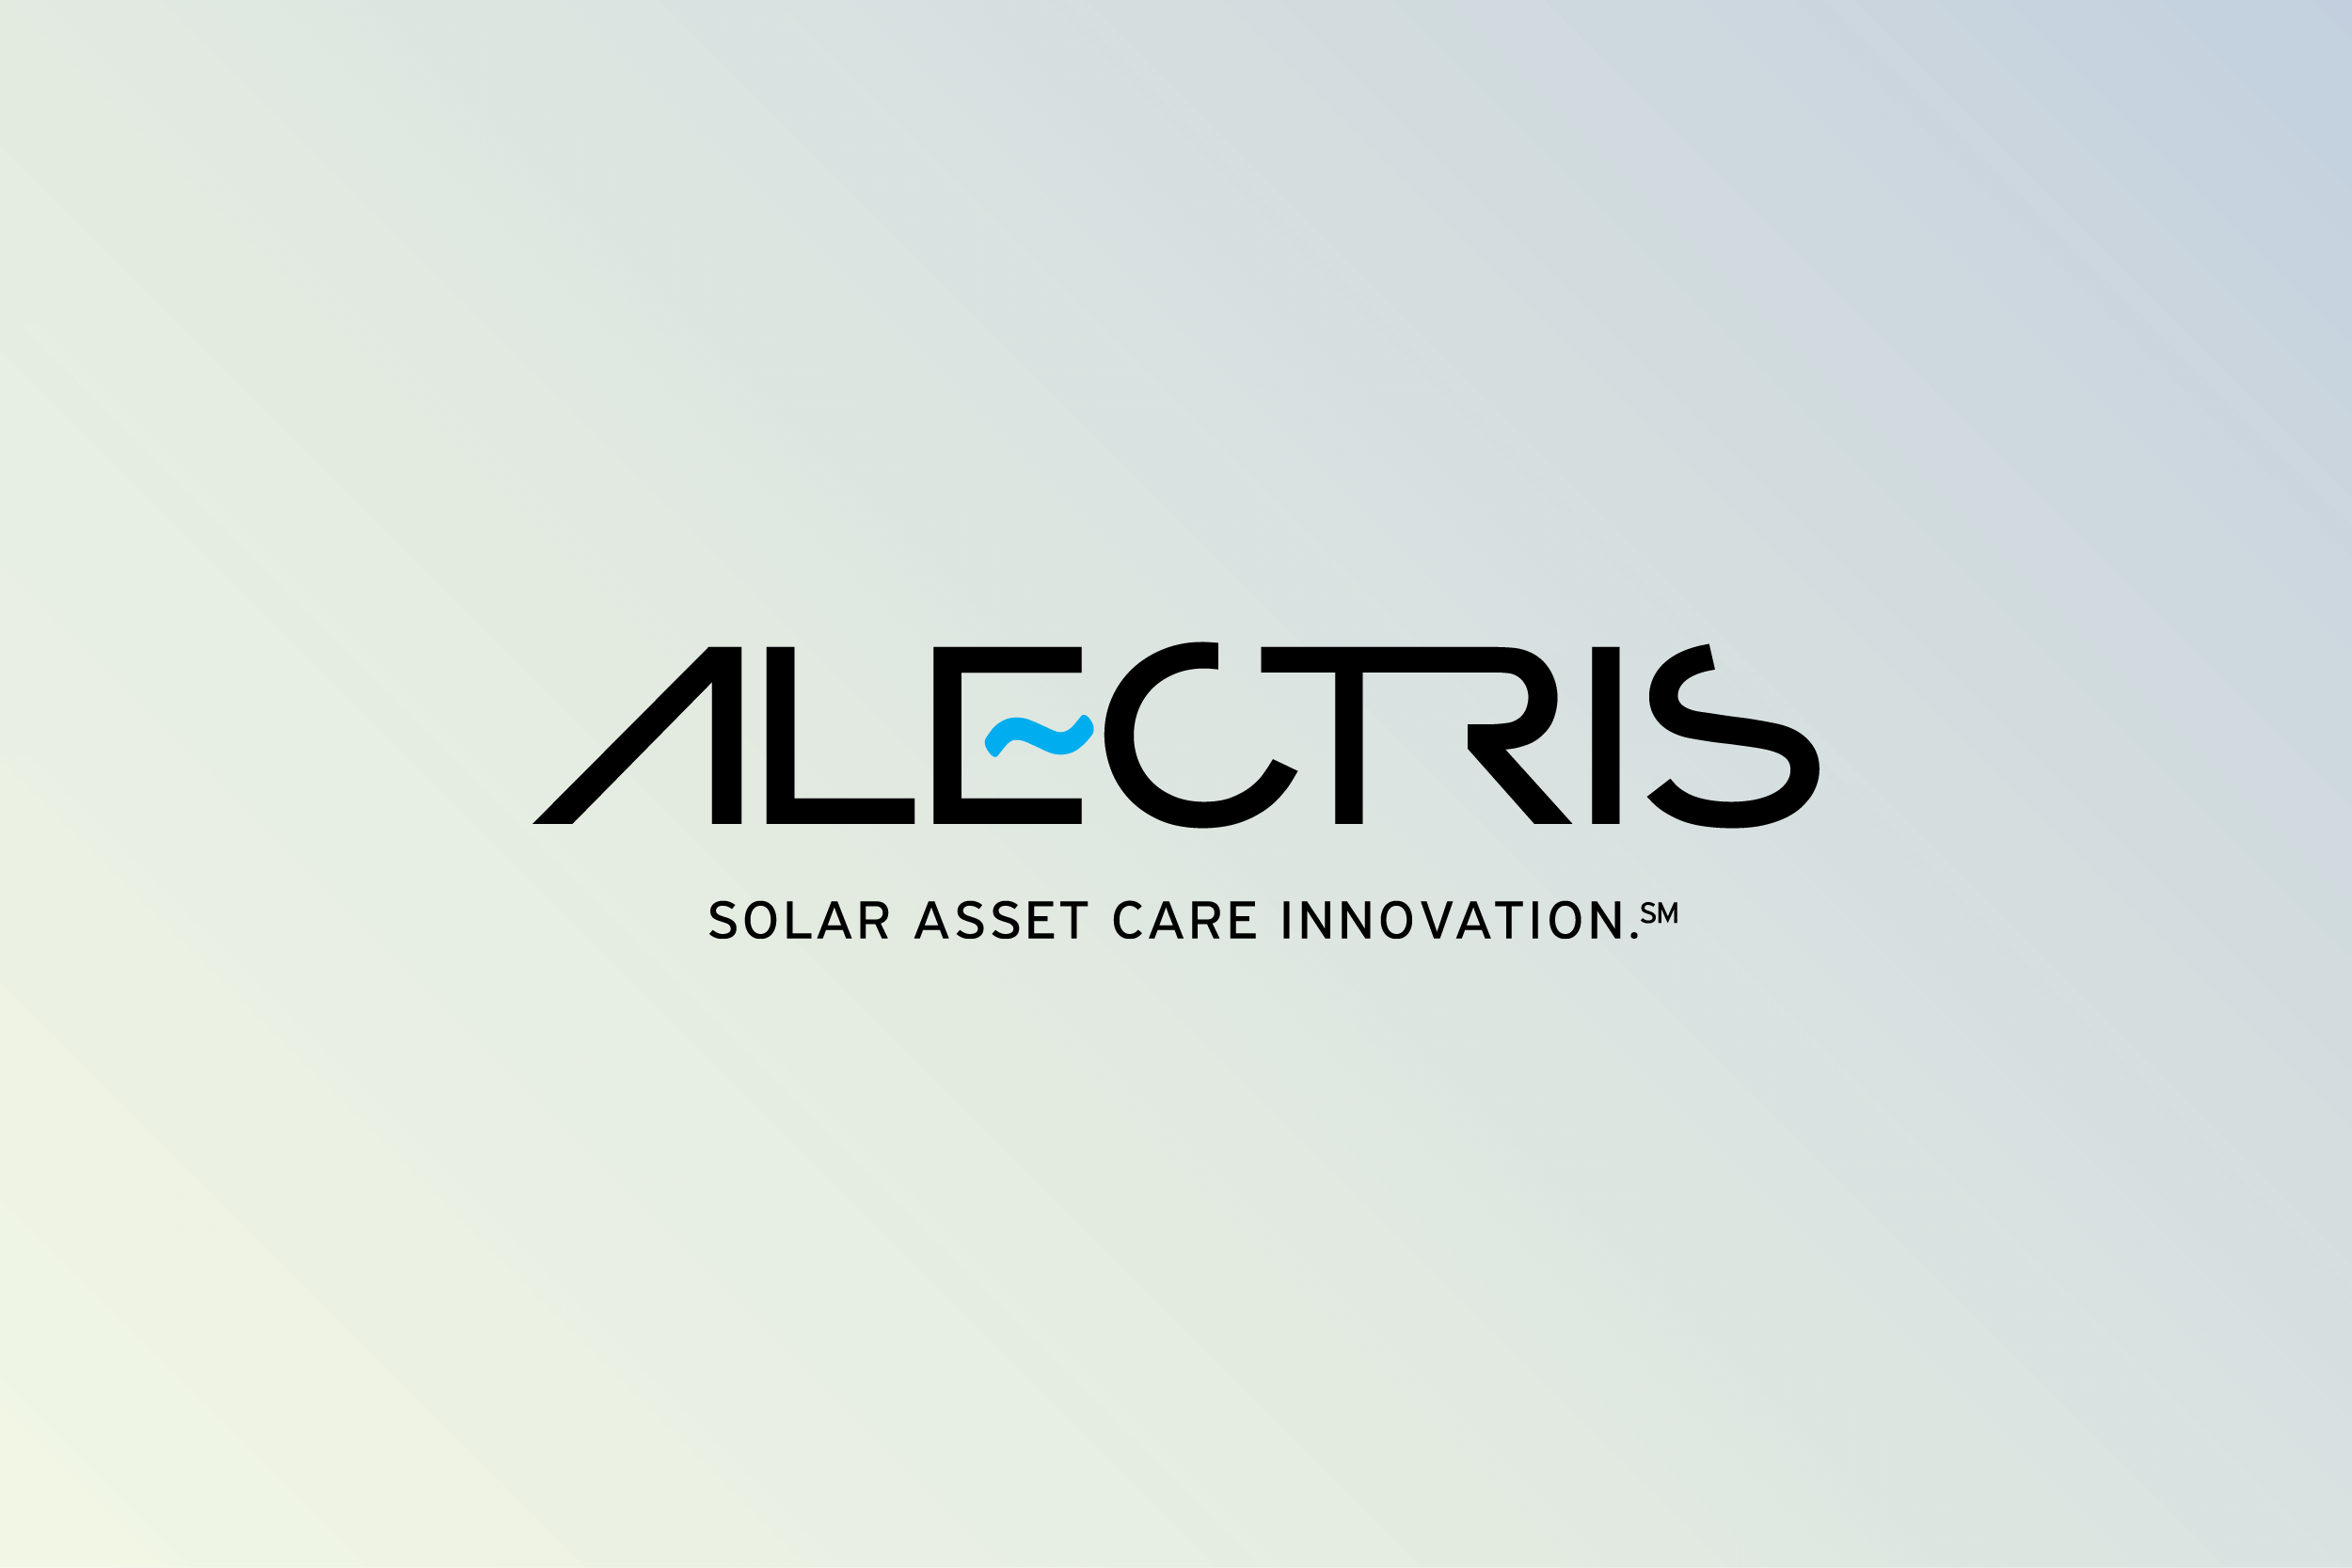 Alectris logo